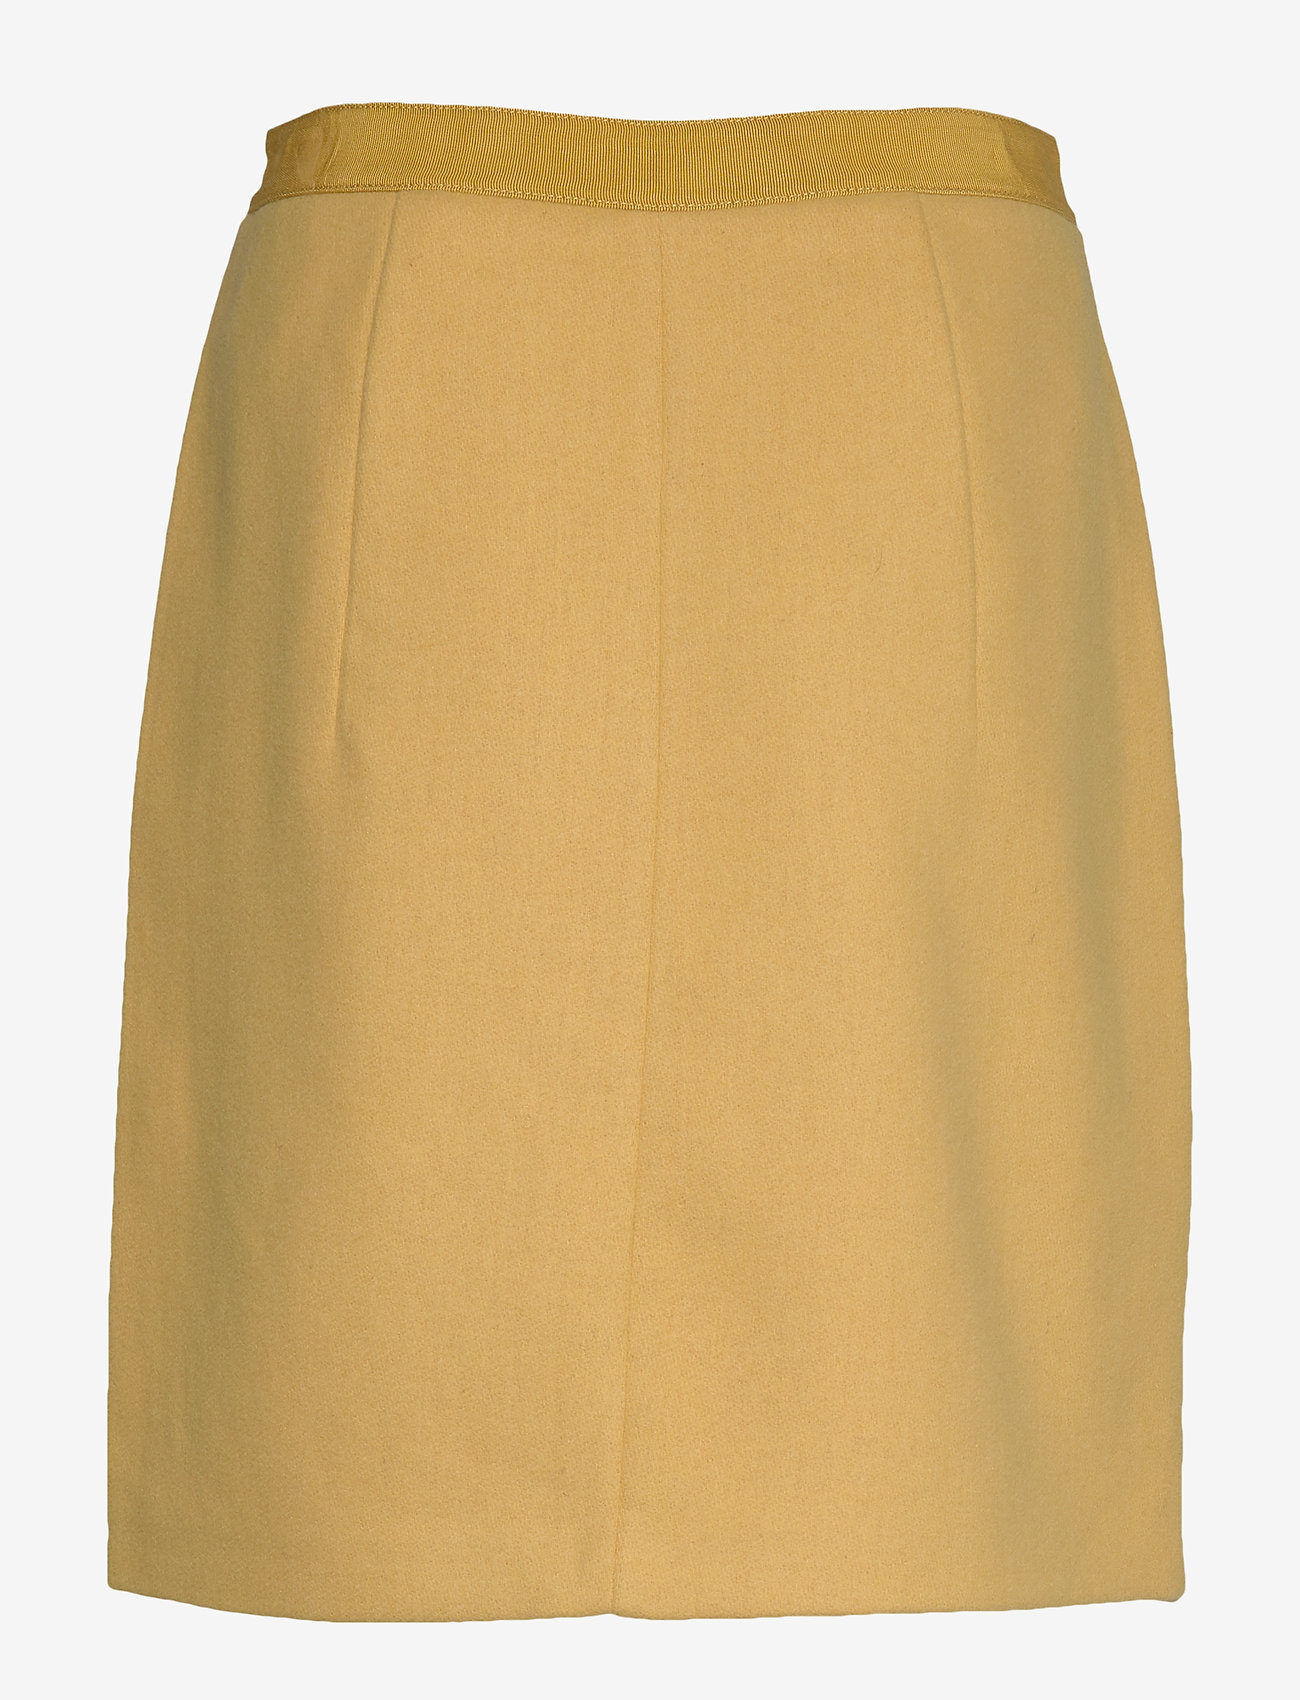 Skirts Woven (Yellow) (300 kr) - Esprit Casual